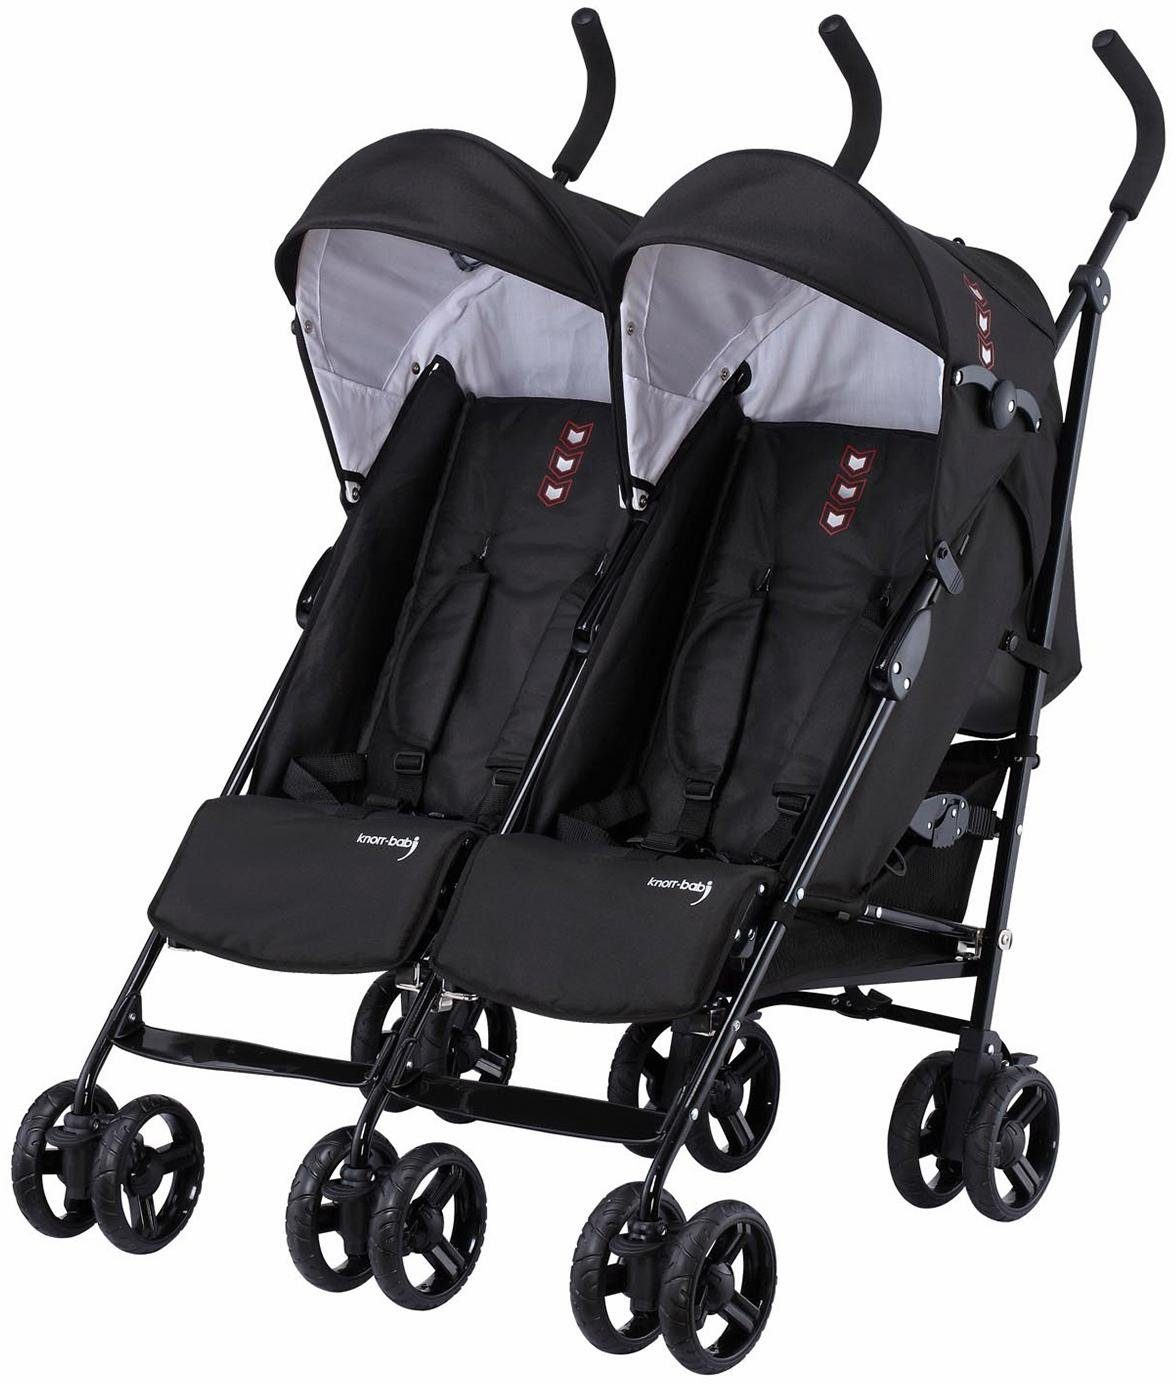 knorr-baby Zwillingsbuggy, »Side by Side, schwarz«